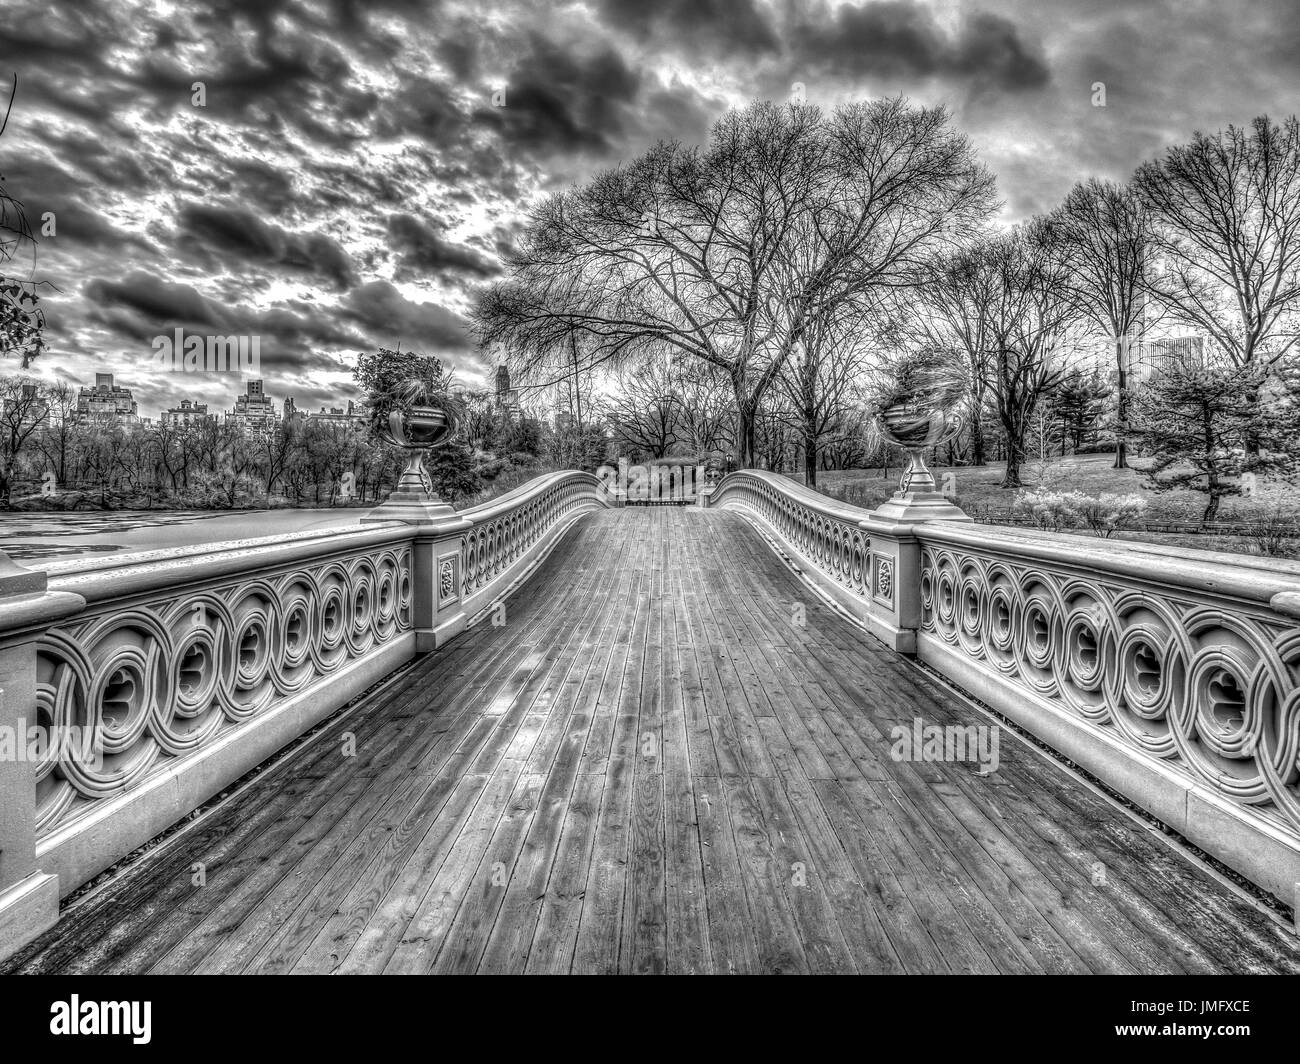 The Bow Bridge  is a cast iron bridge located in Central Park, New York City, crossing over The Lake - Stock Image